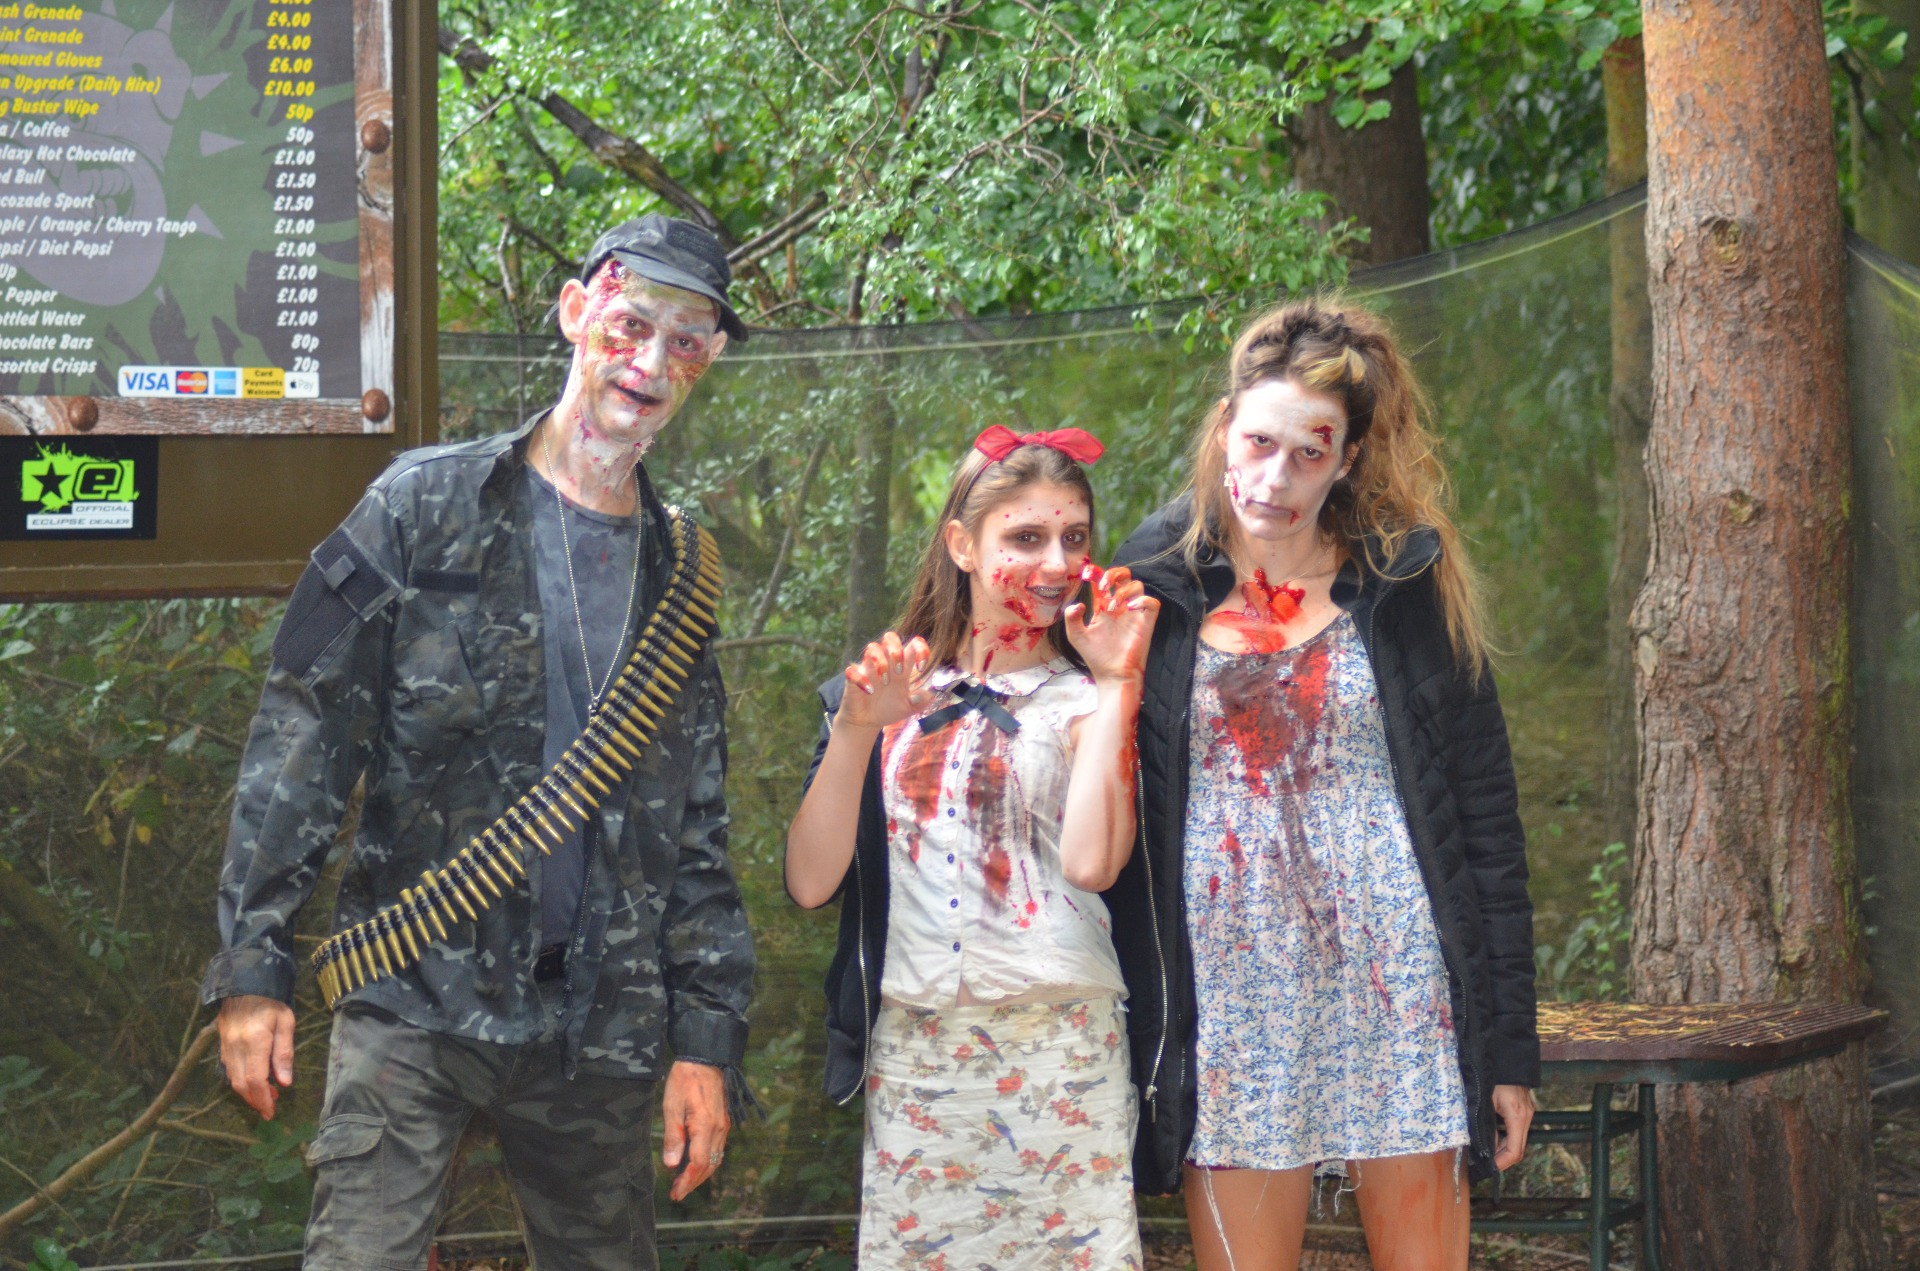 Family of Zombies